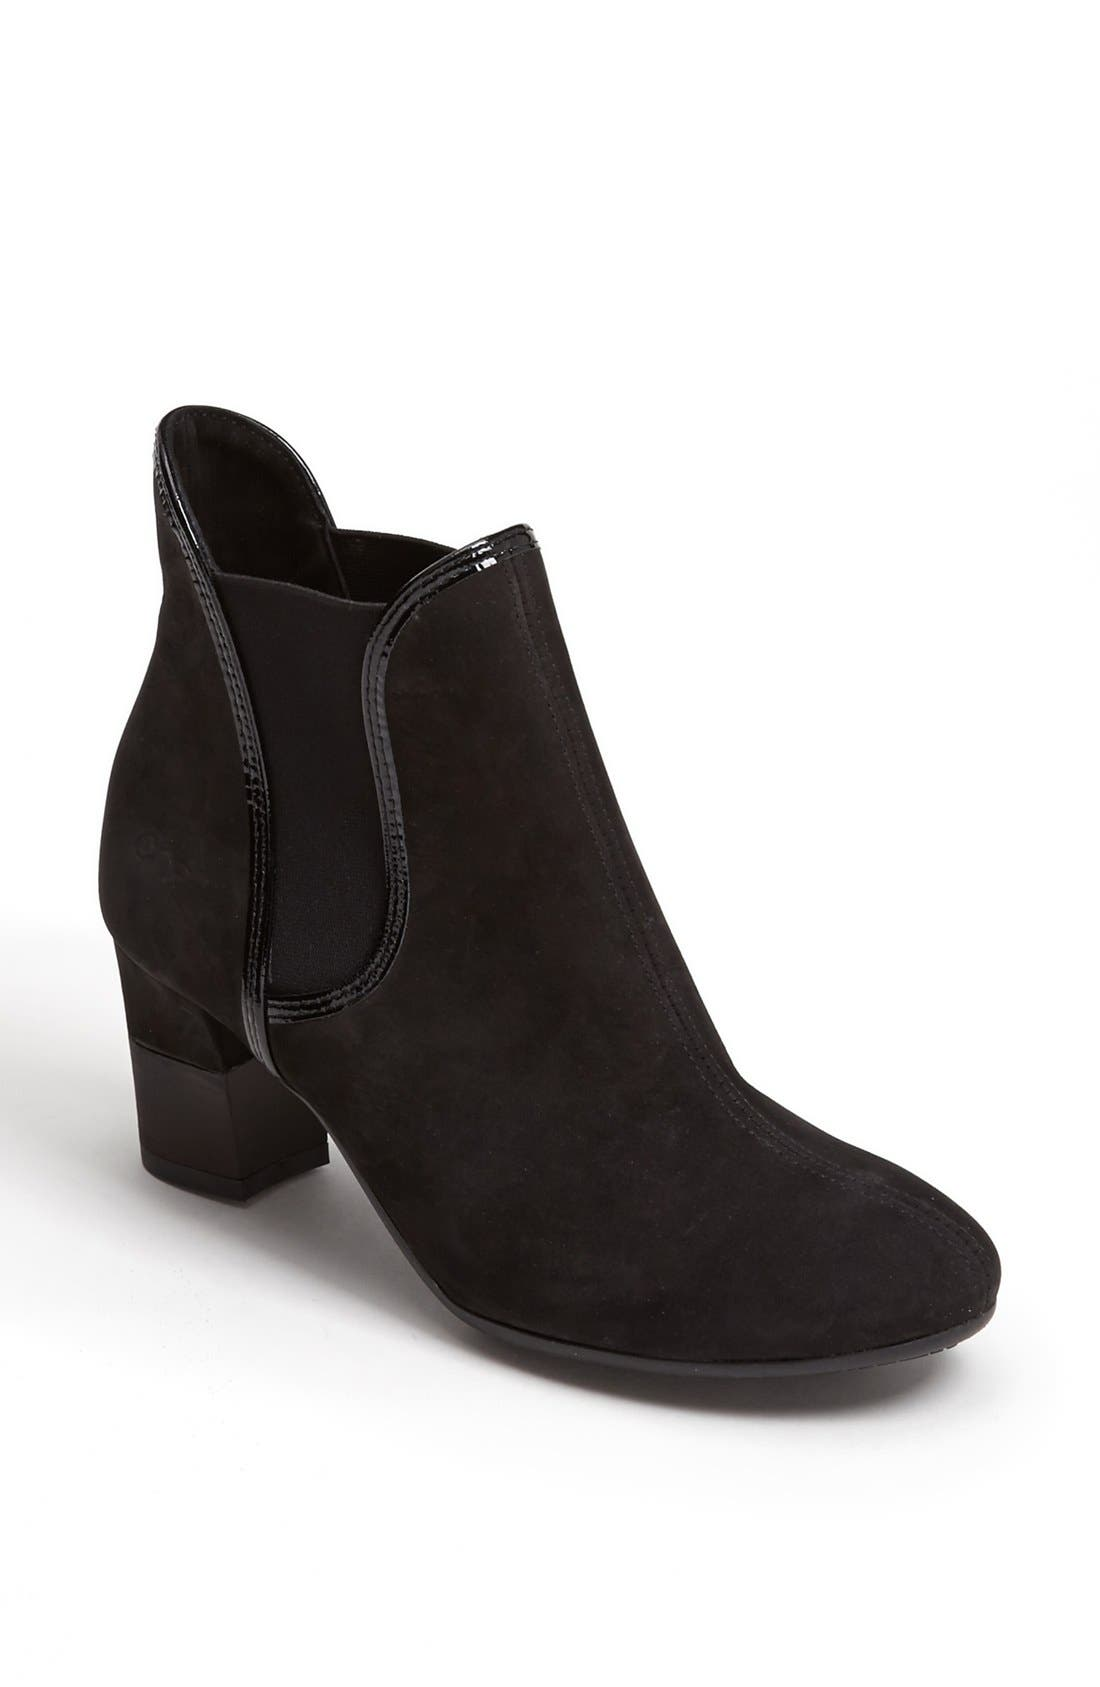 Alternate Image 1 Selected - Arche 'Perek' Nubuck Double Gore Bootie